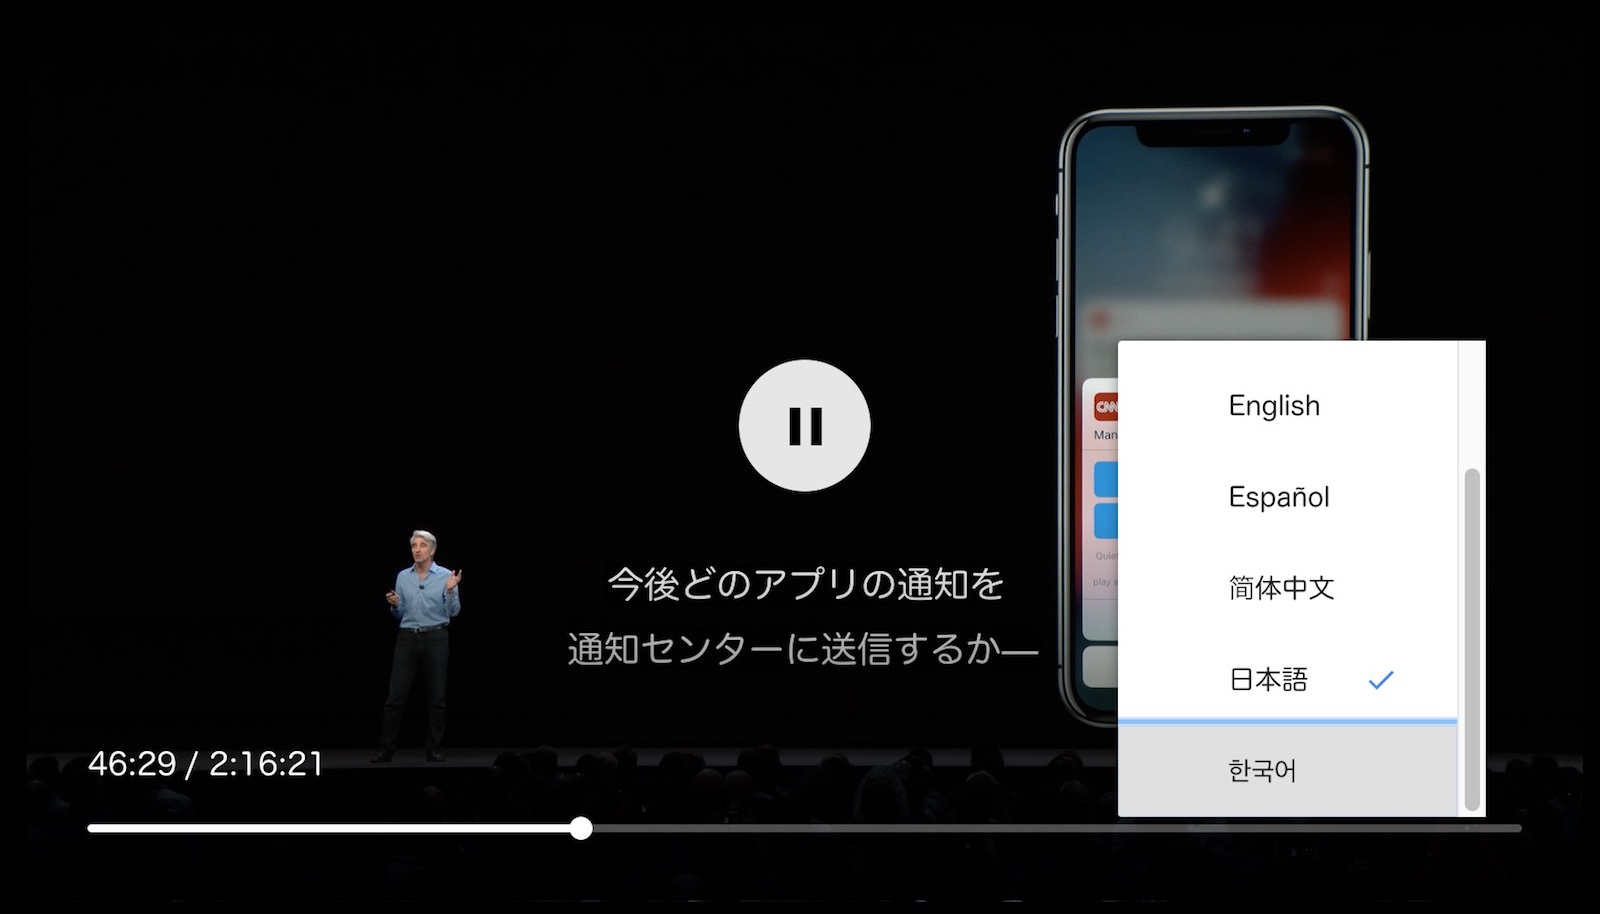 Japanese Subtitles for WWDC2018